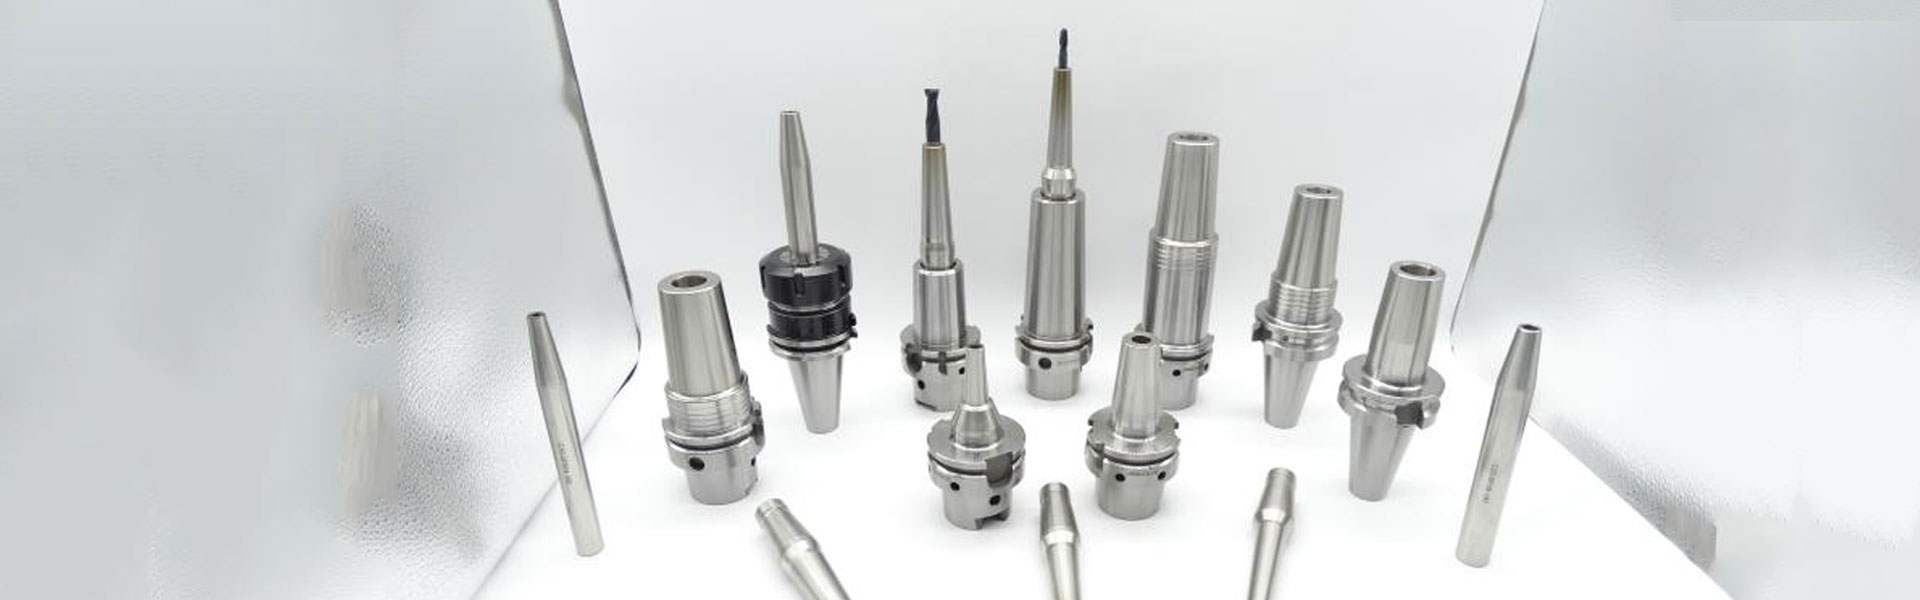 Pingyuan Tianyu machine tool accessories co., ltd